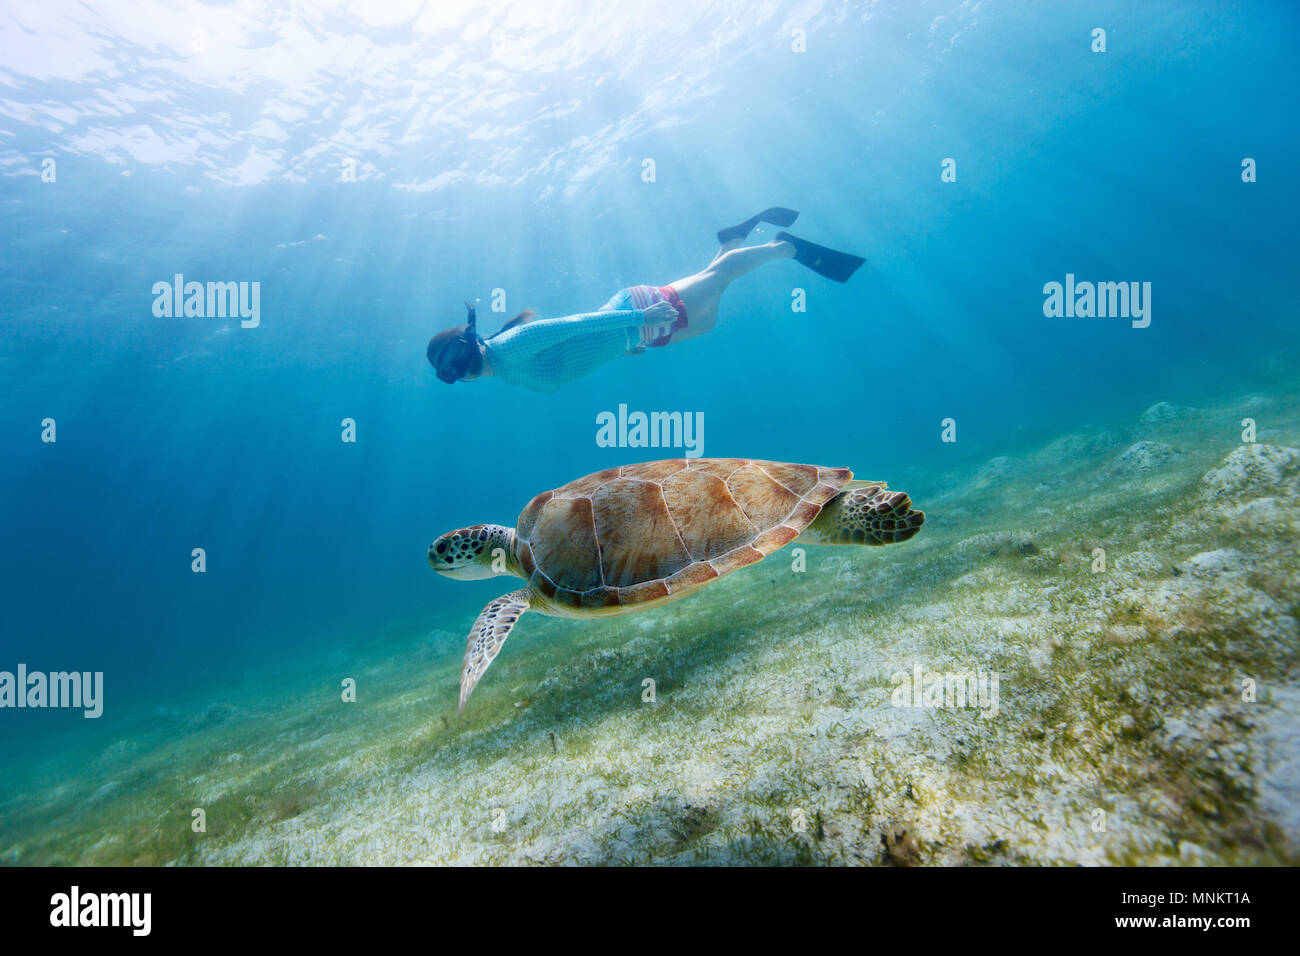 Underwater photo of young woman snorkeling and swimming with Hawksbill sea turtle Stock Photo